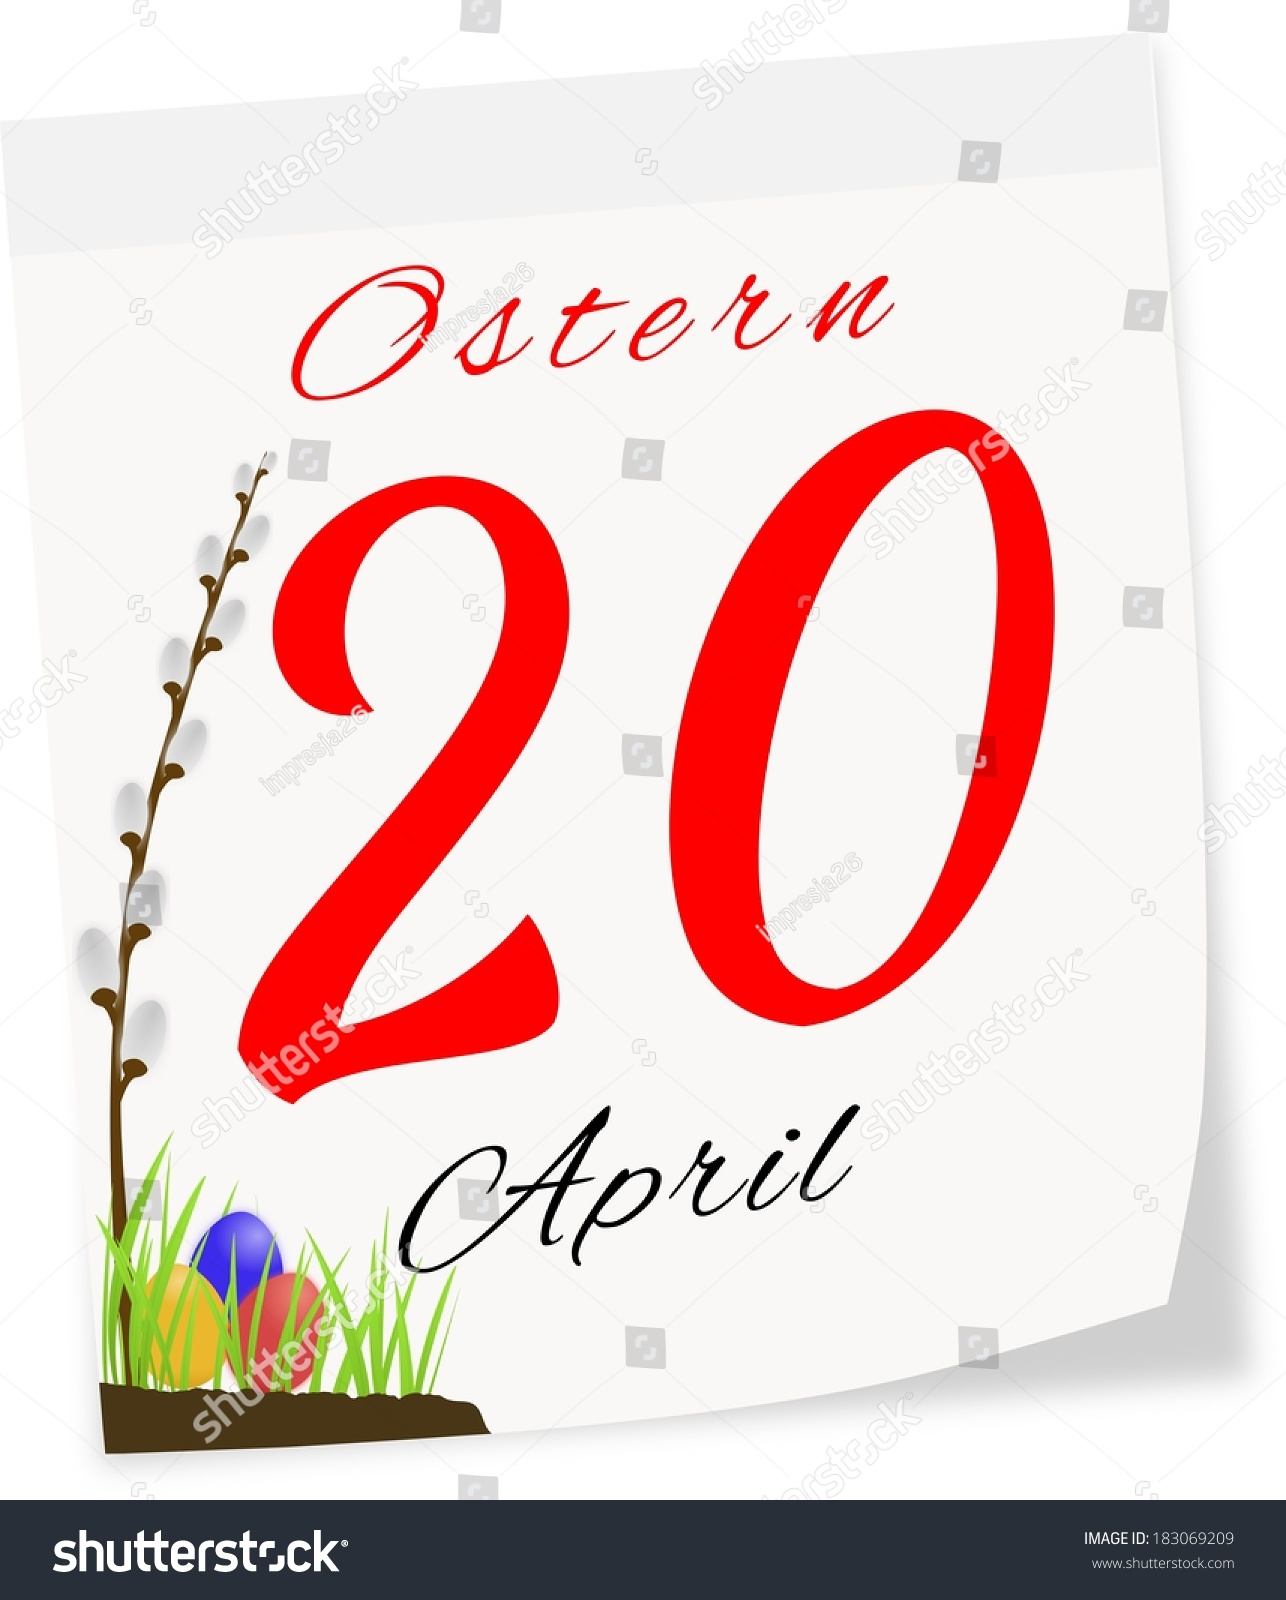 Date of easter 2014